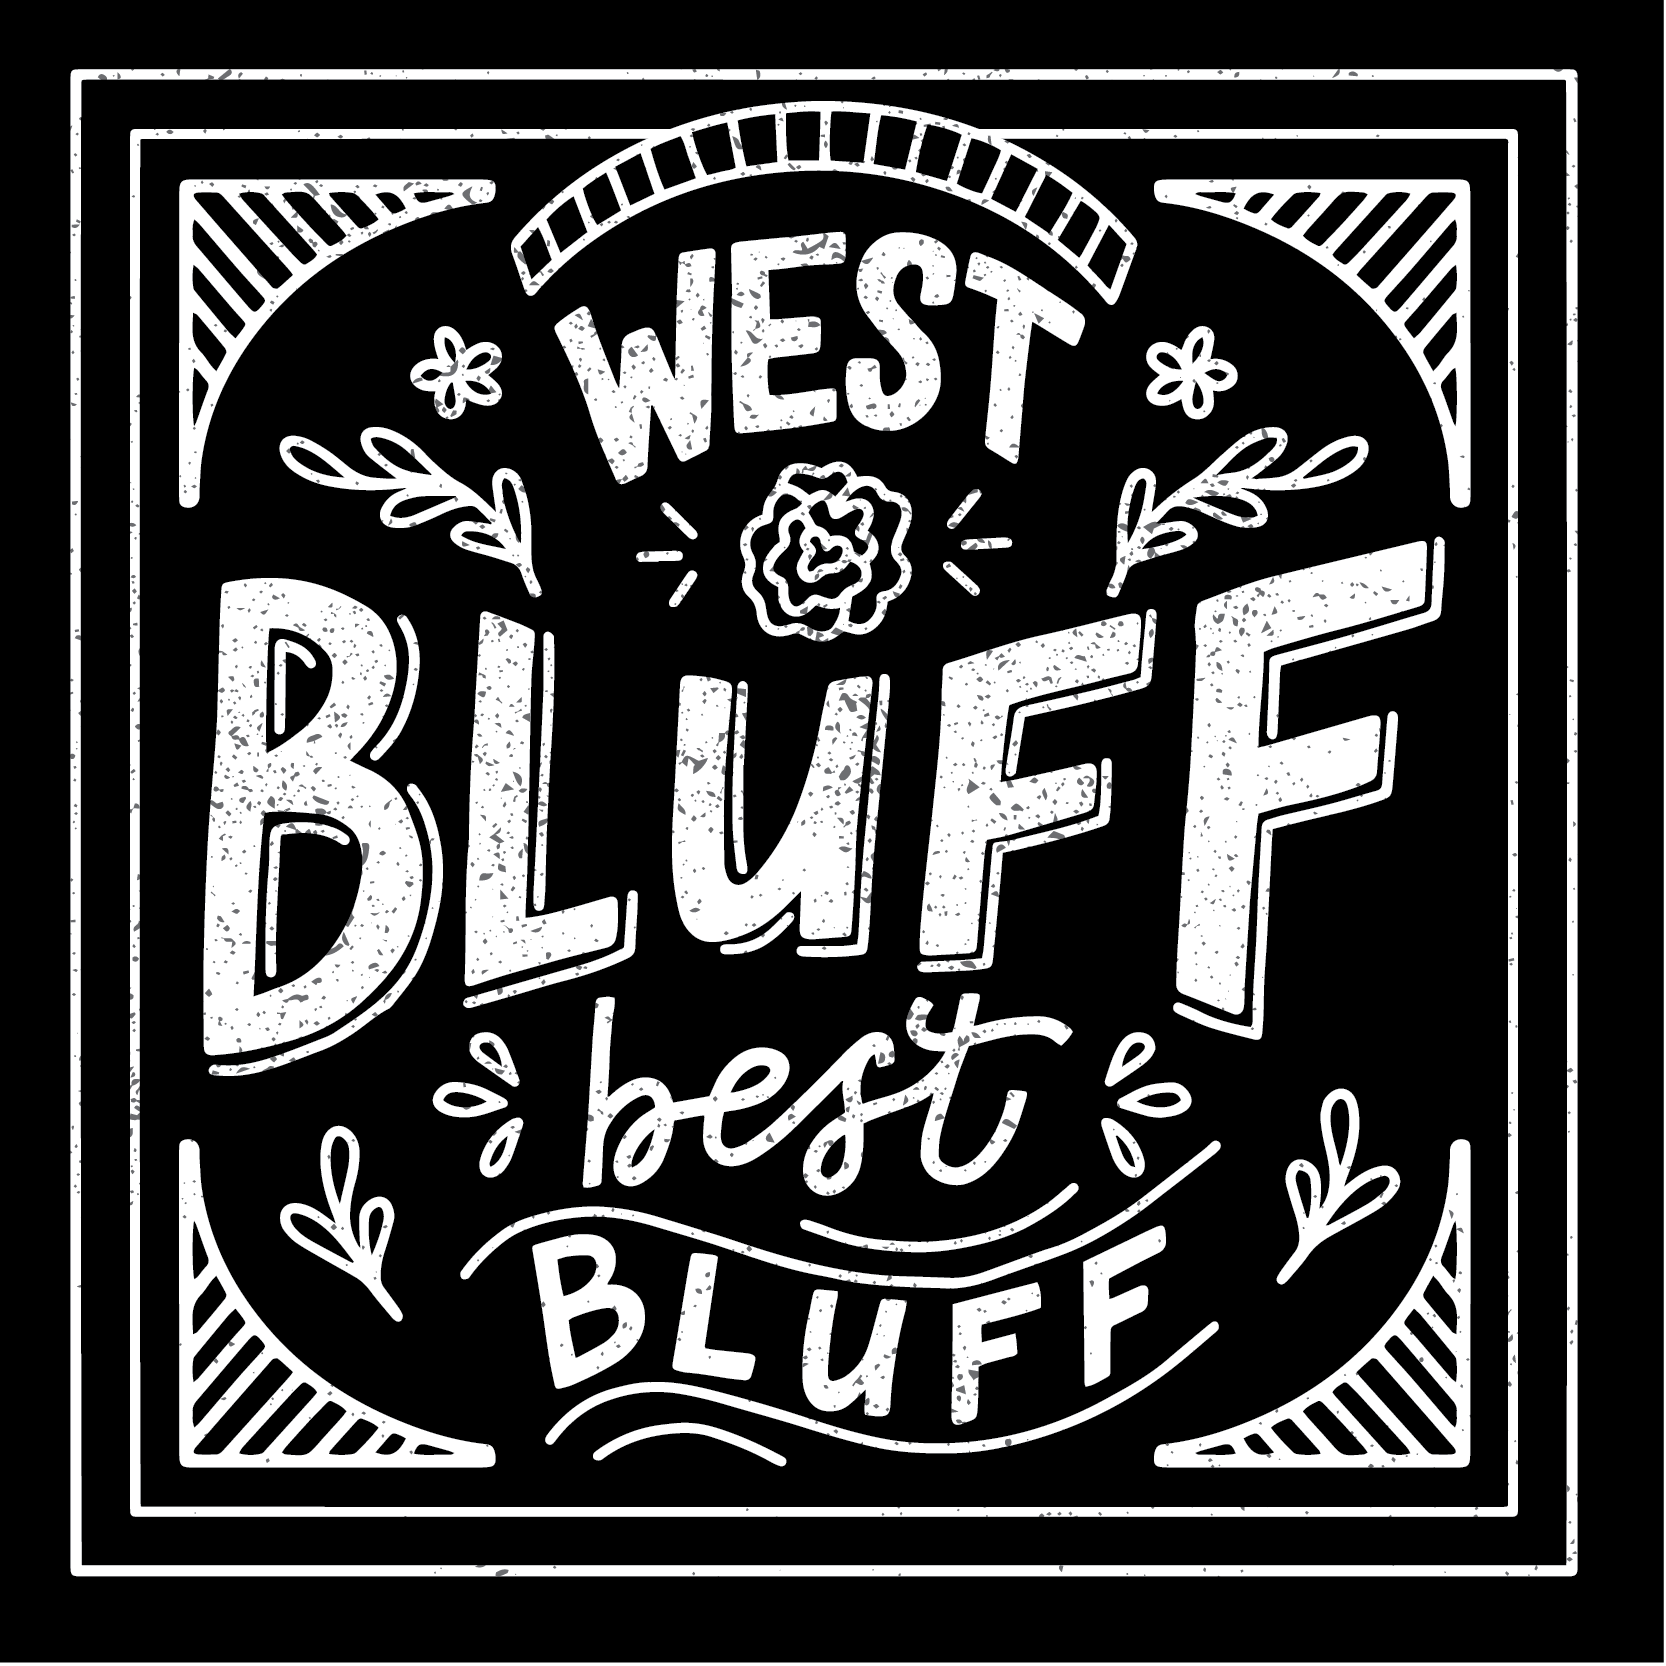 West Bluff Best Bluff Neighborhood Branding Design